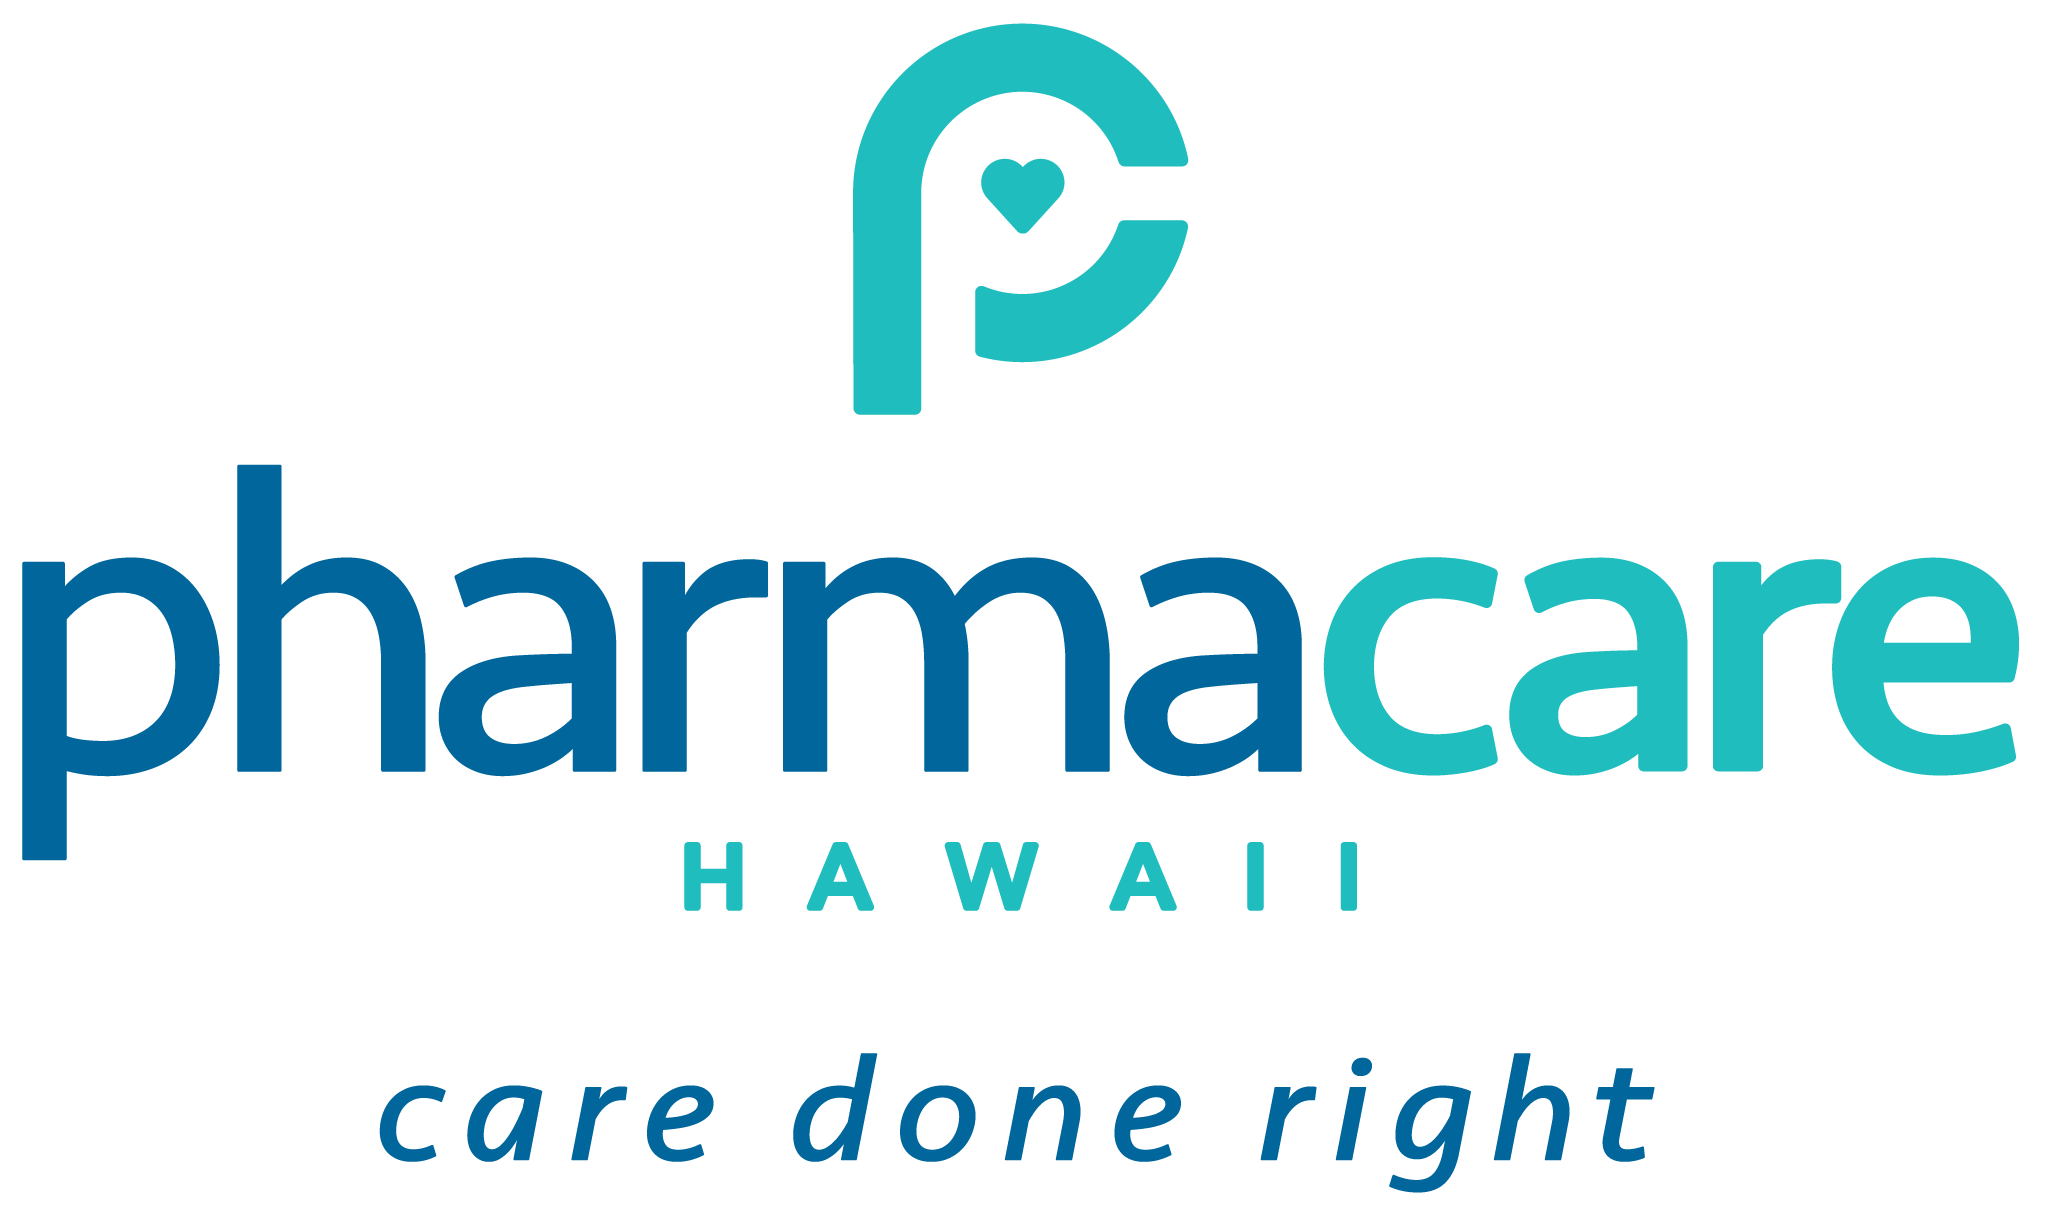 Pharmacare Hawaii